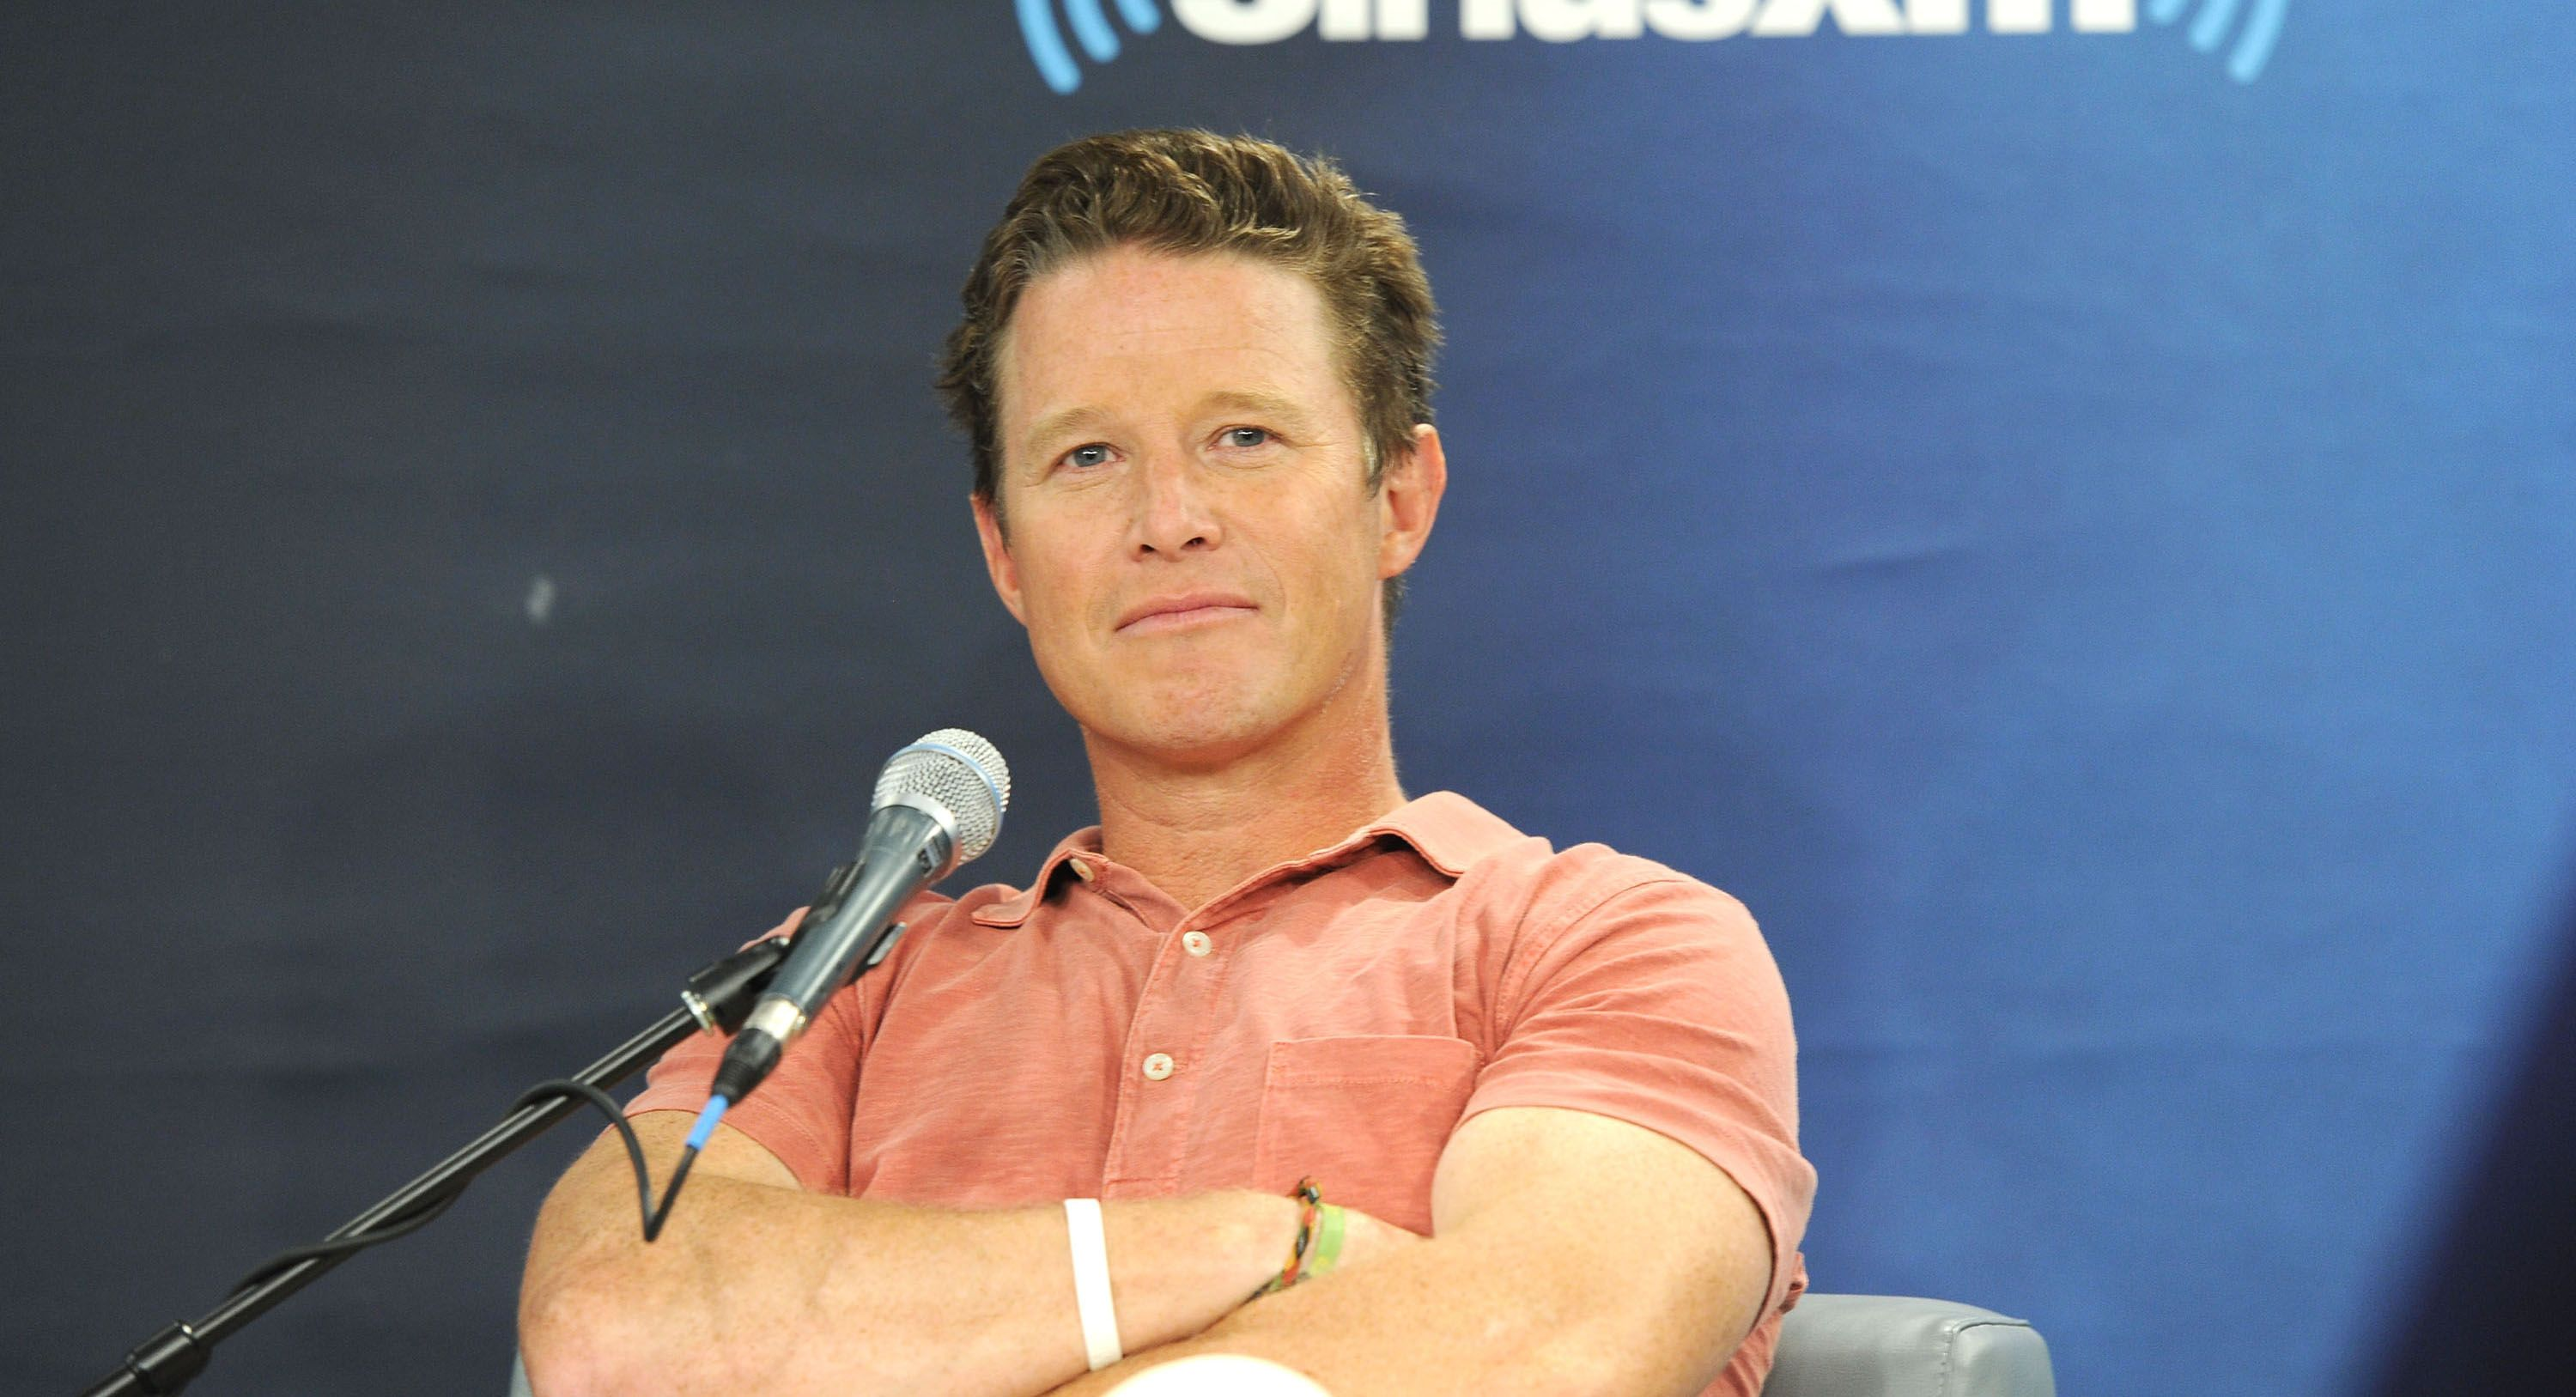 Billy Bush on notorious Trump tape: It wasn't 'locker room talk' - Politico